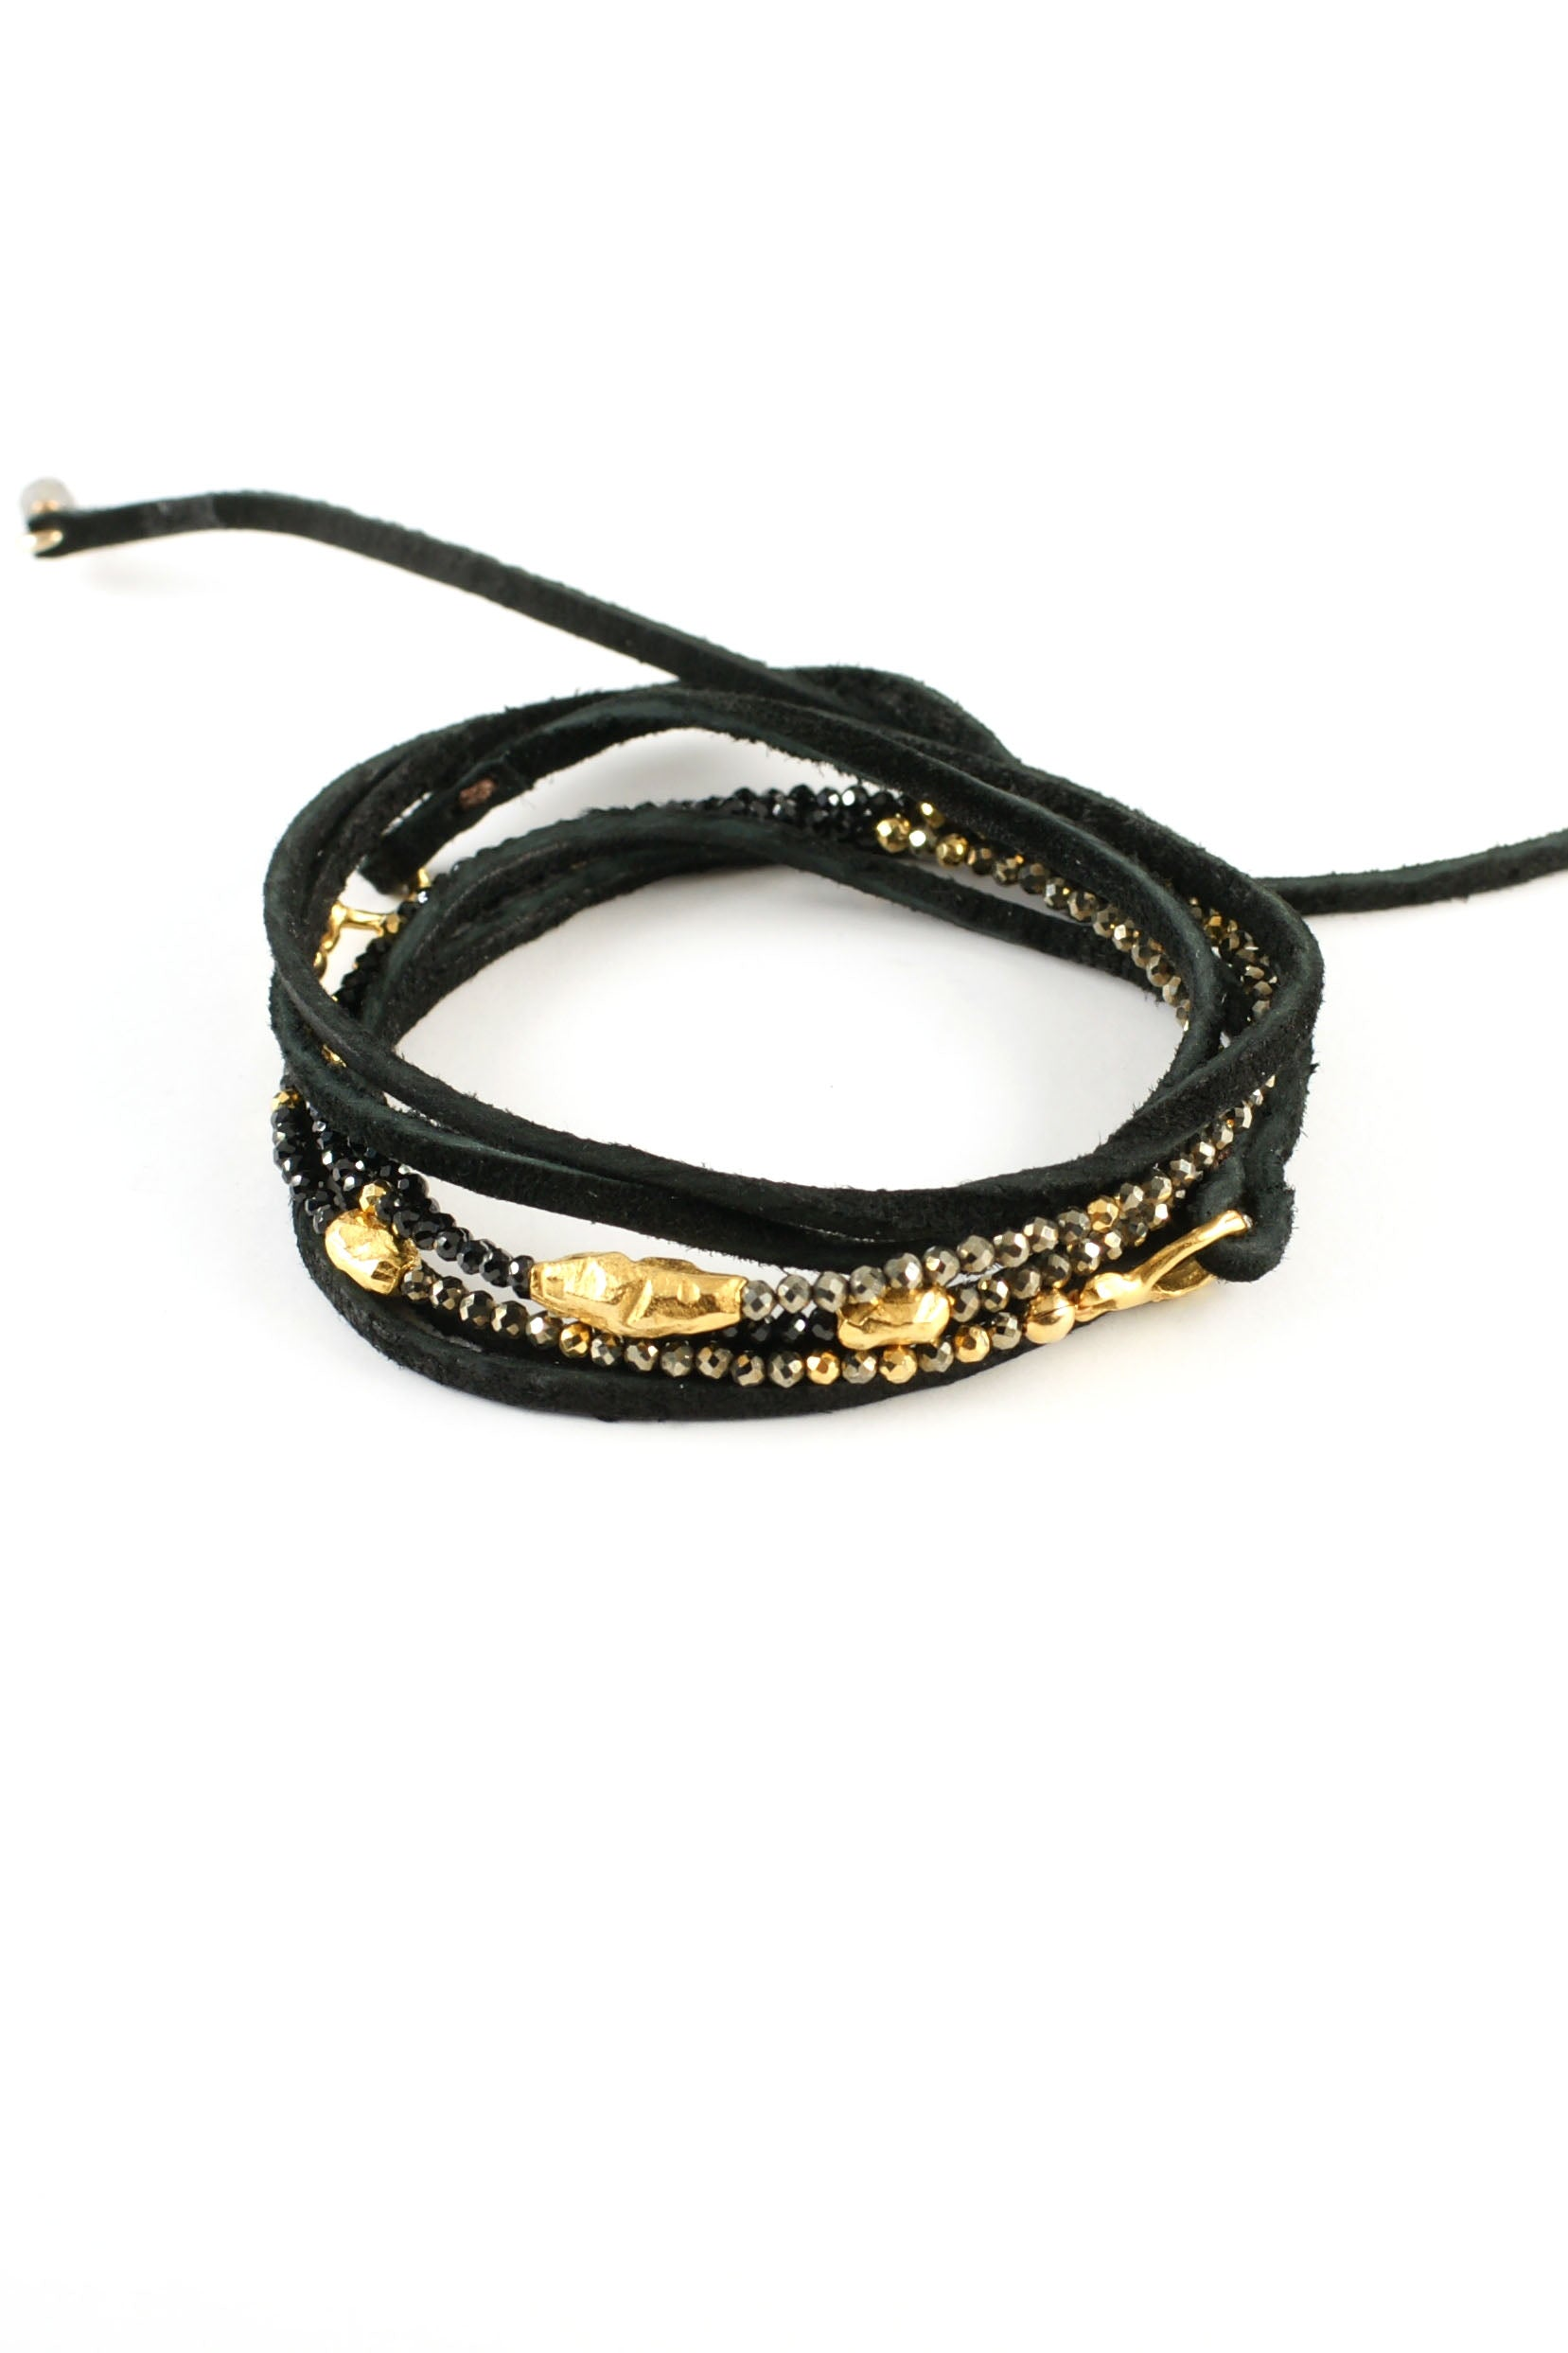 Black Spinel and Pyrite Leather Wrap